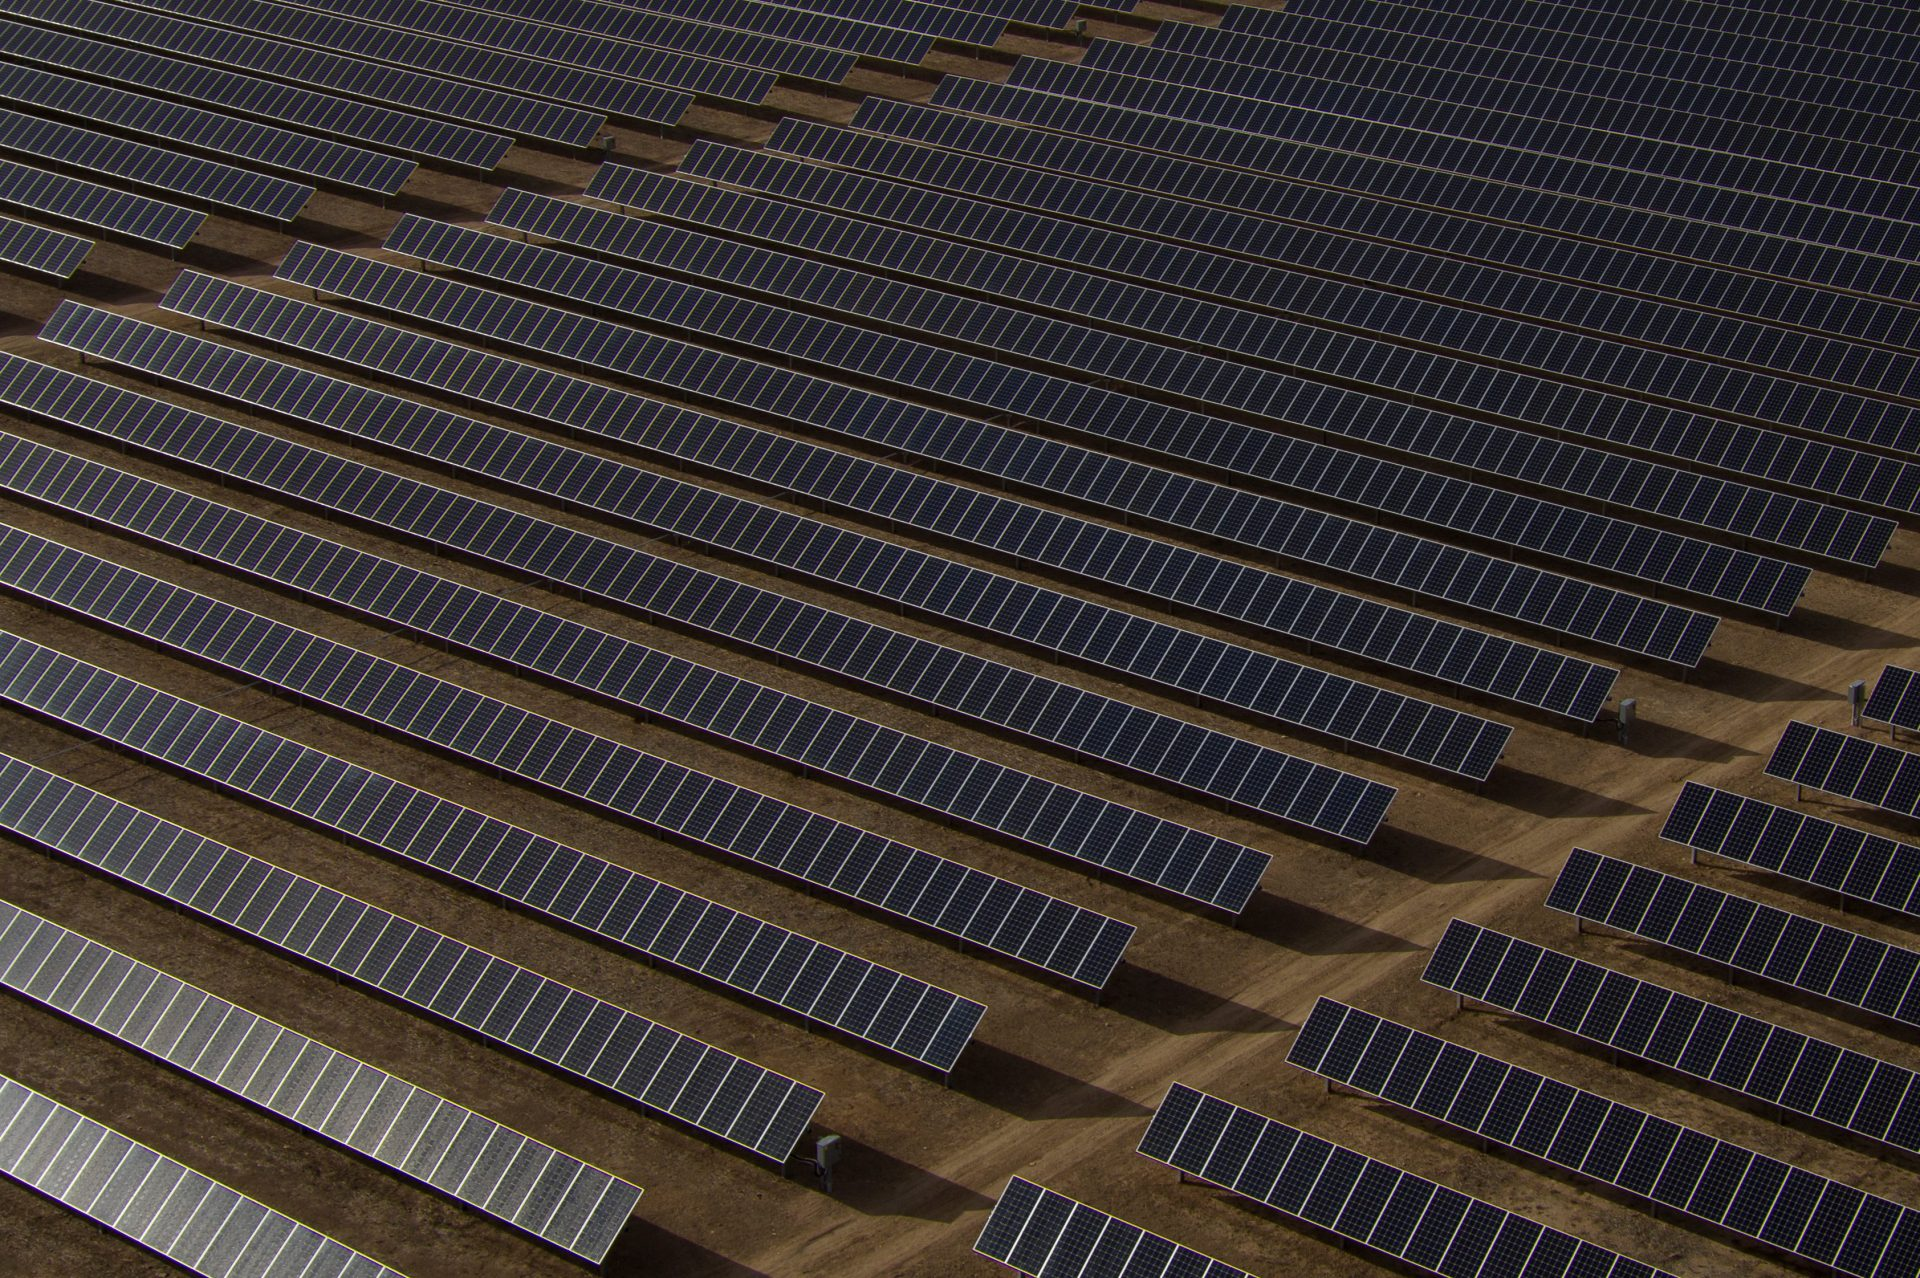 Thousands of solar panels